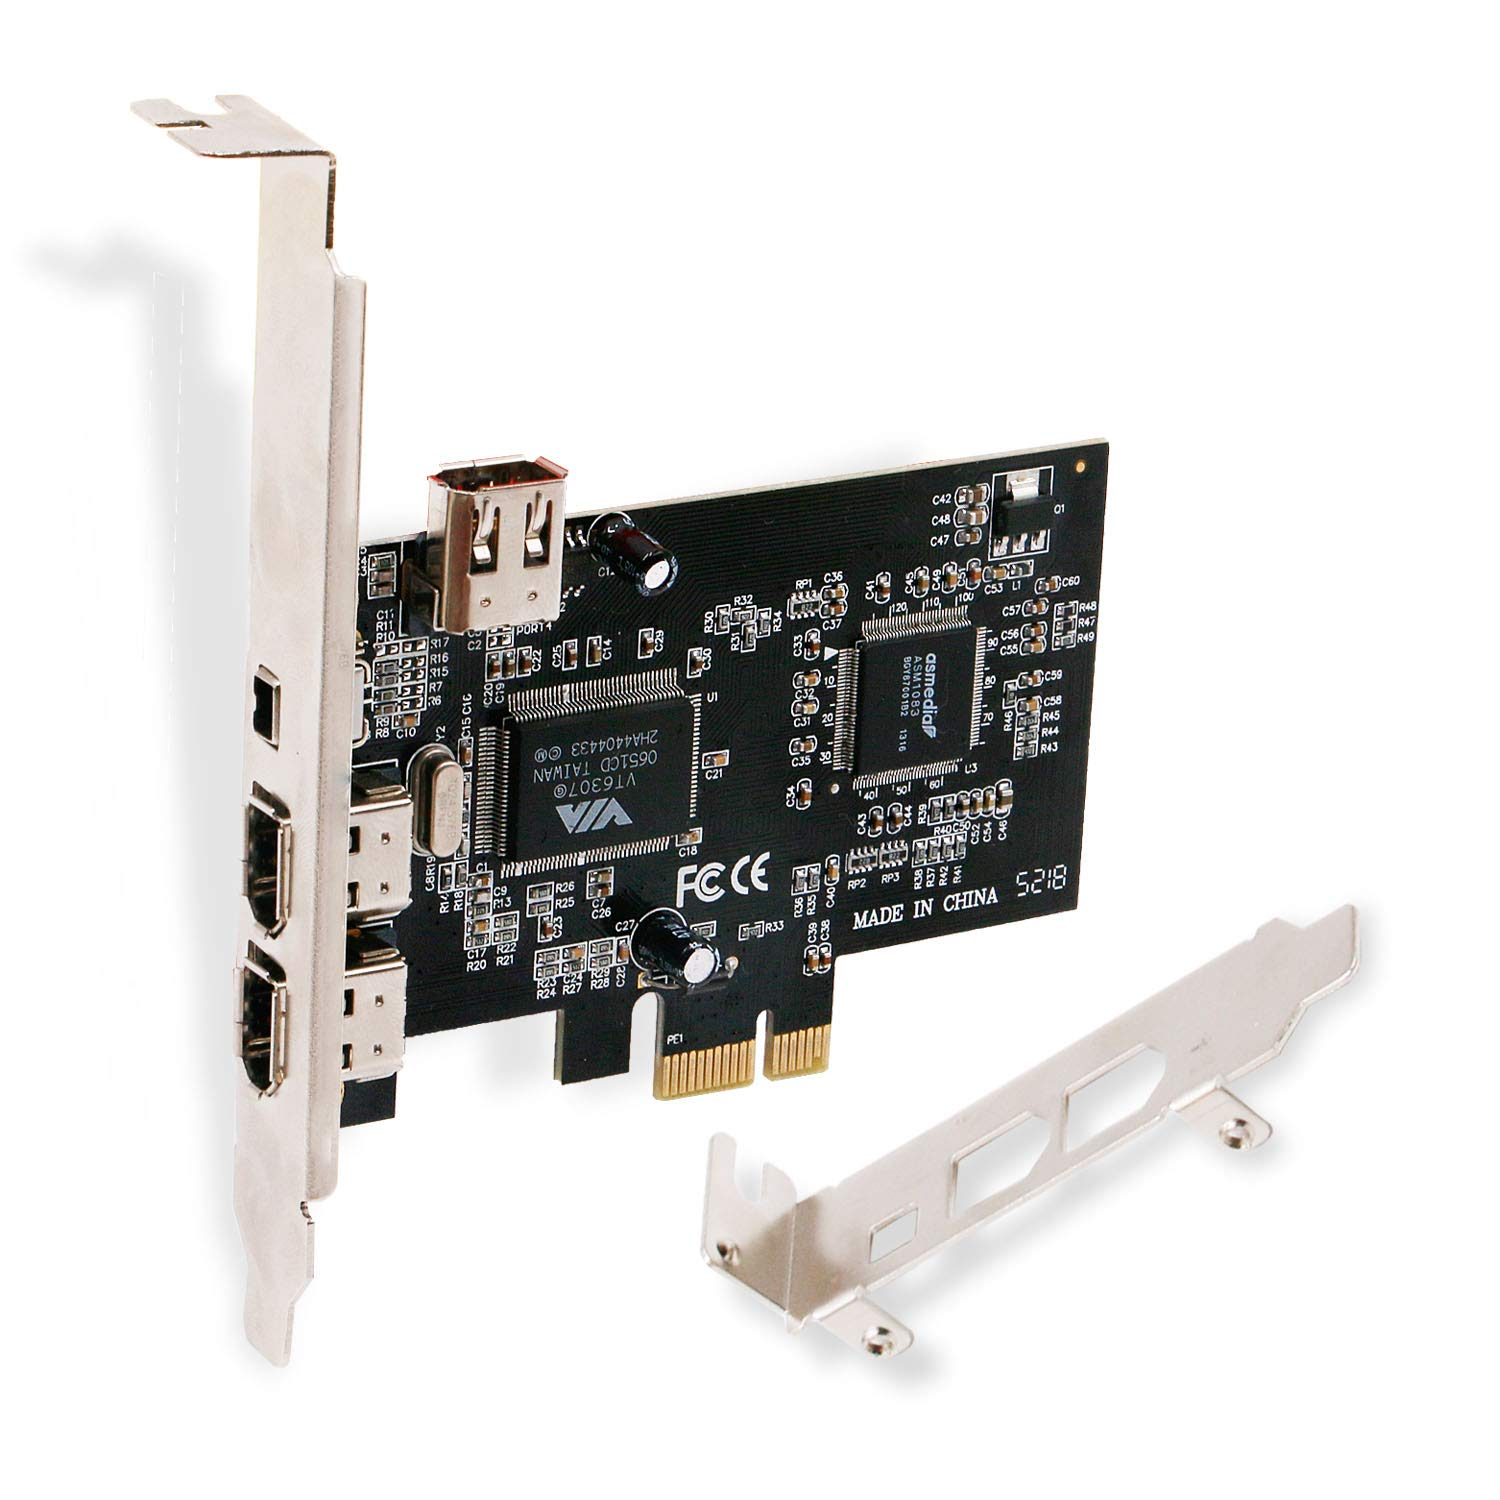 Tarjeta Pcie Firewire Linkstek Para Windows 98/2000/2003 / Xp / Vista / 7/8 / 8.1 / 10 / Servidor Pc De Escritorio (32 /